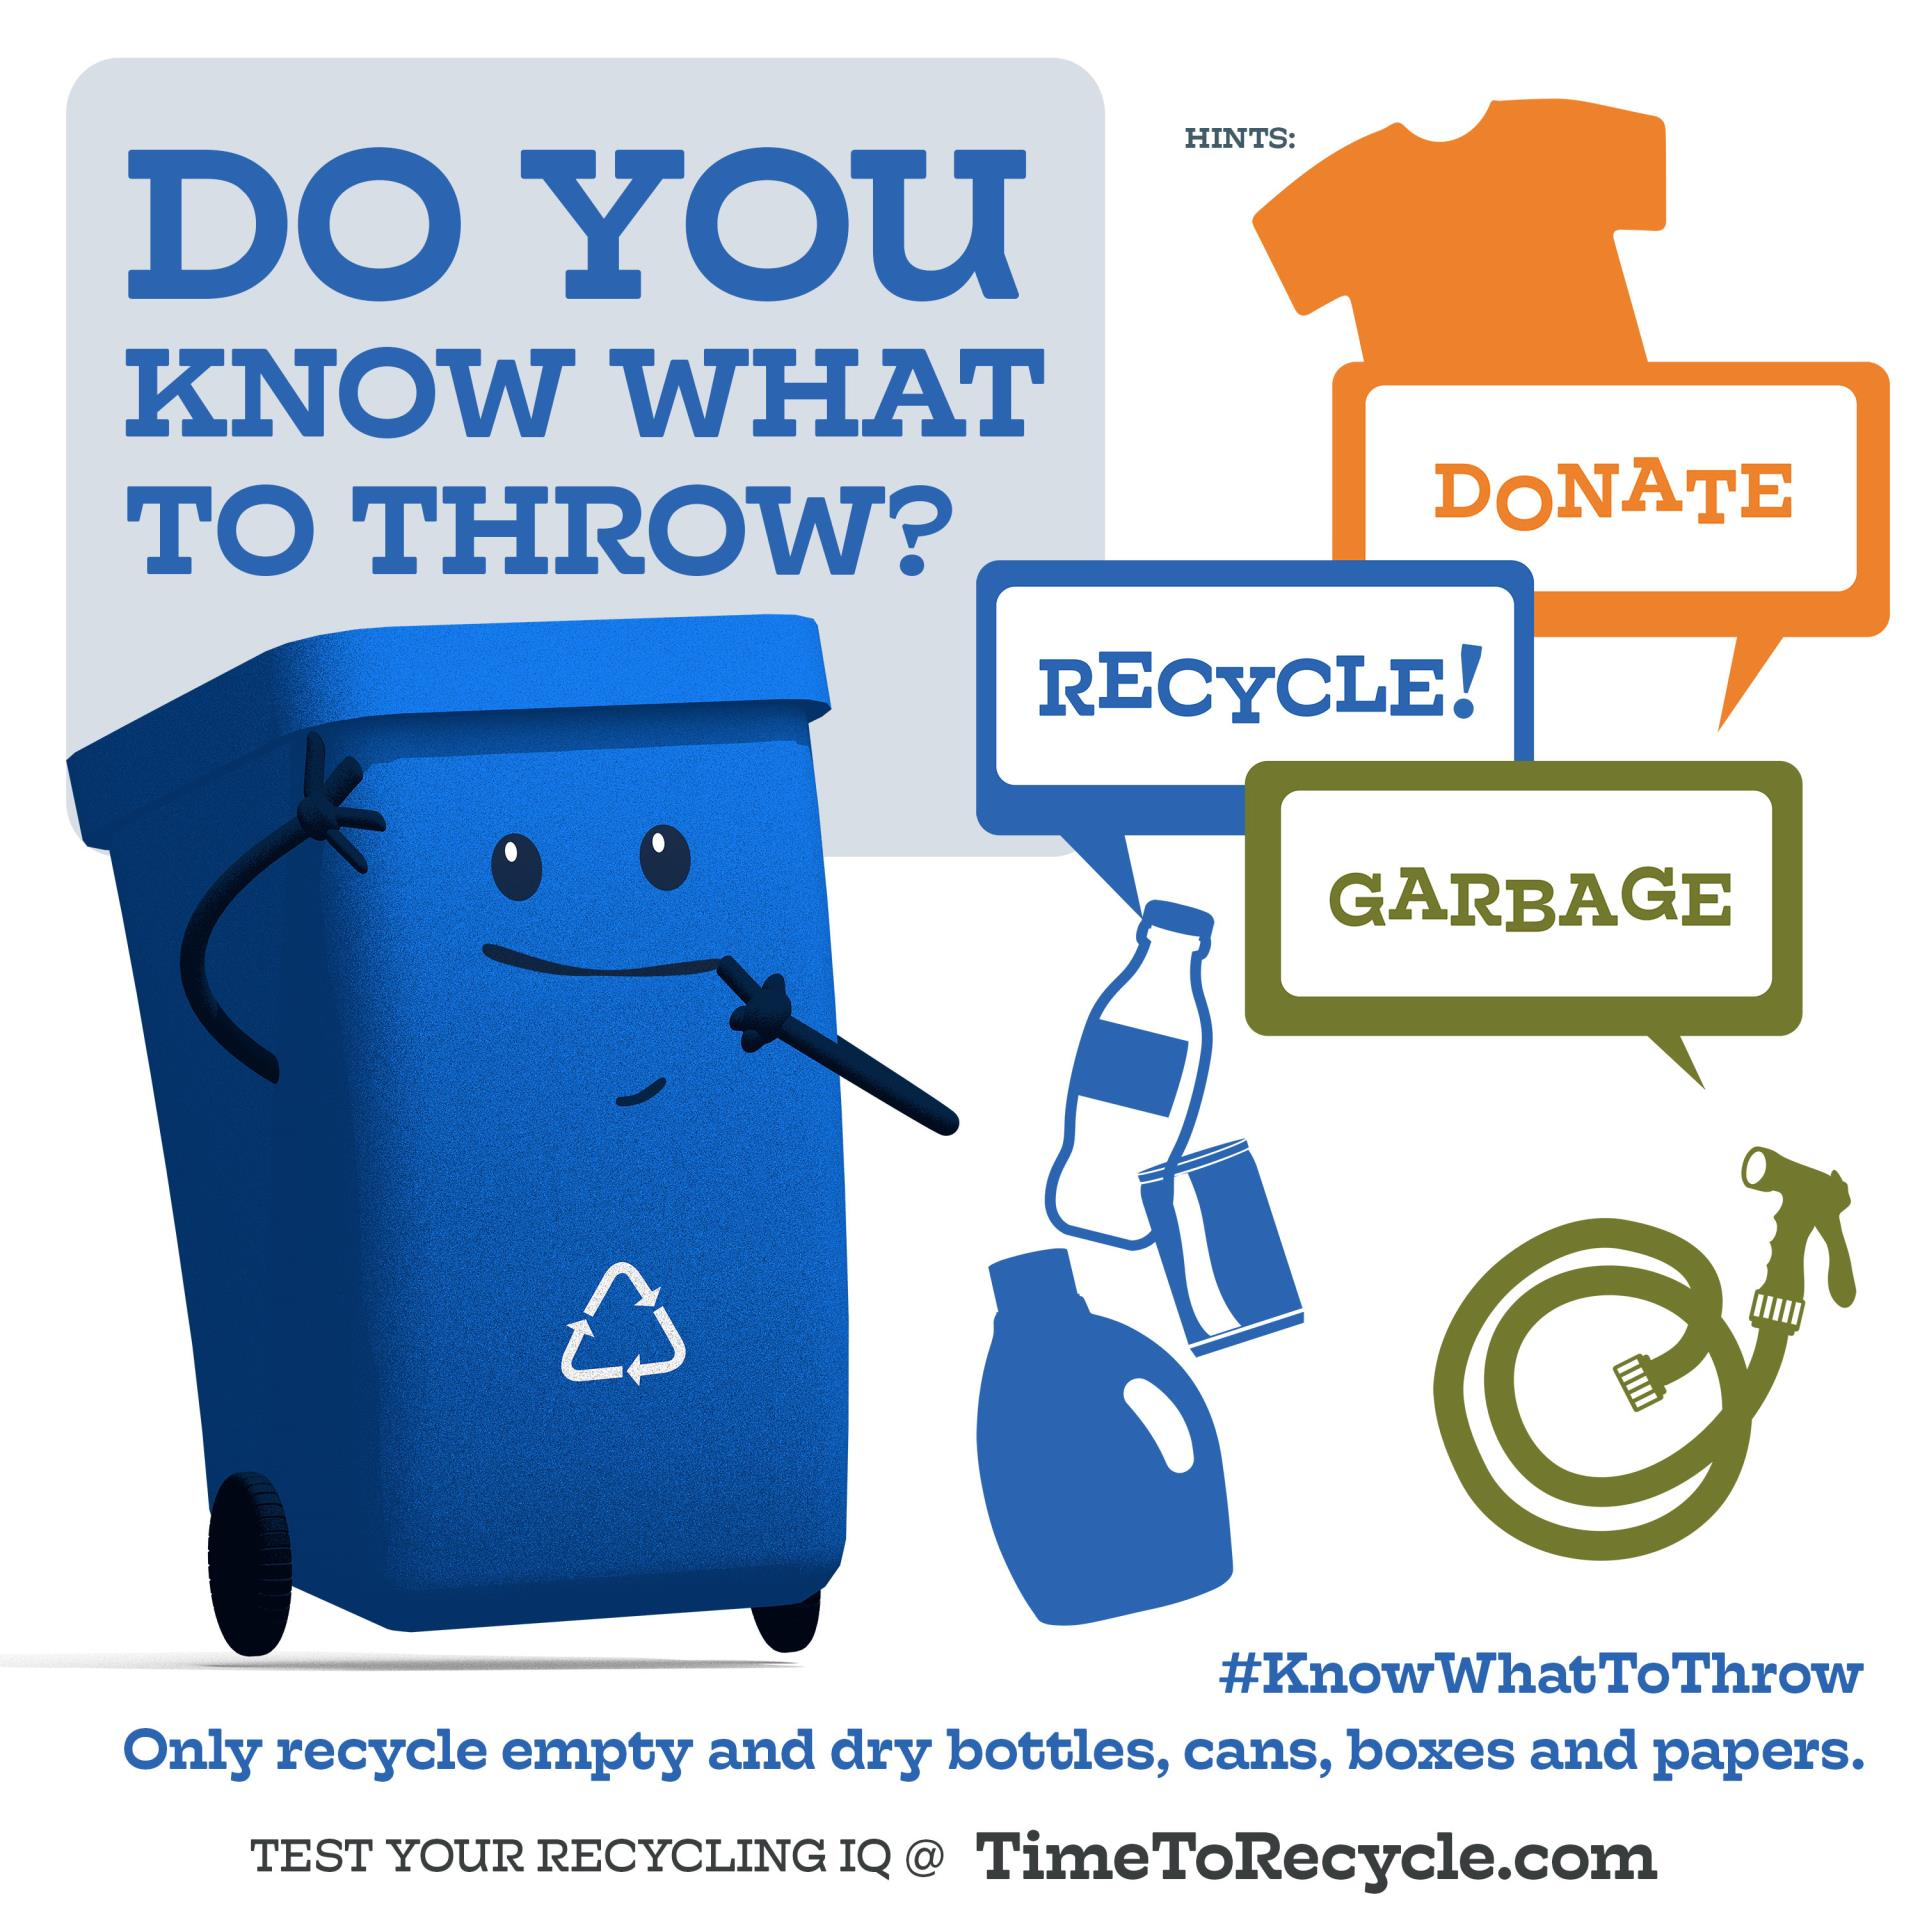 Recycle Donate Garbage 10_x10_ Ad